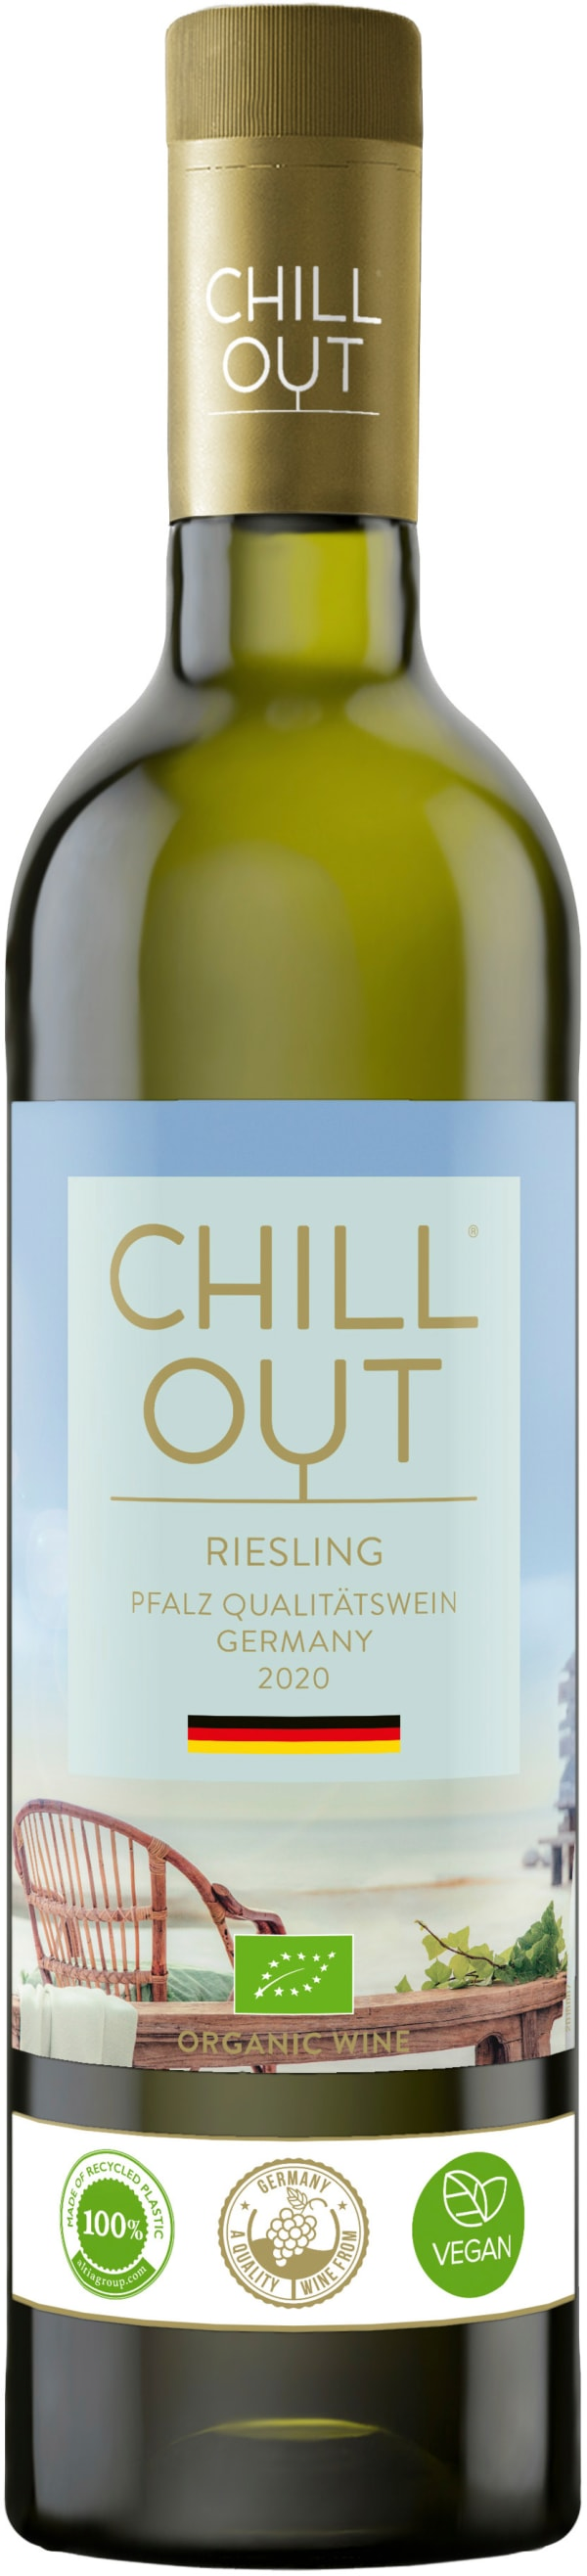 Chill Out Riesling 2017 plastflaska